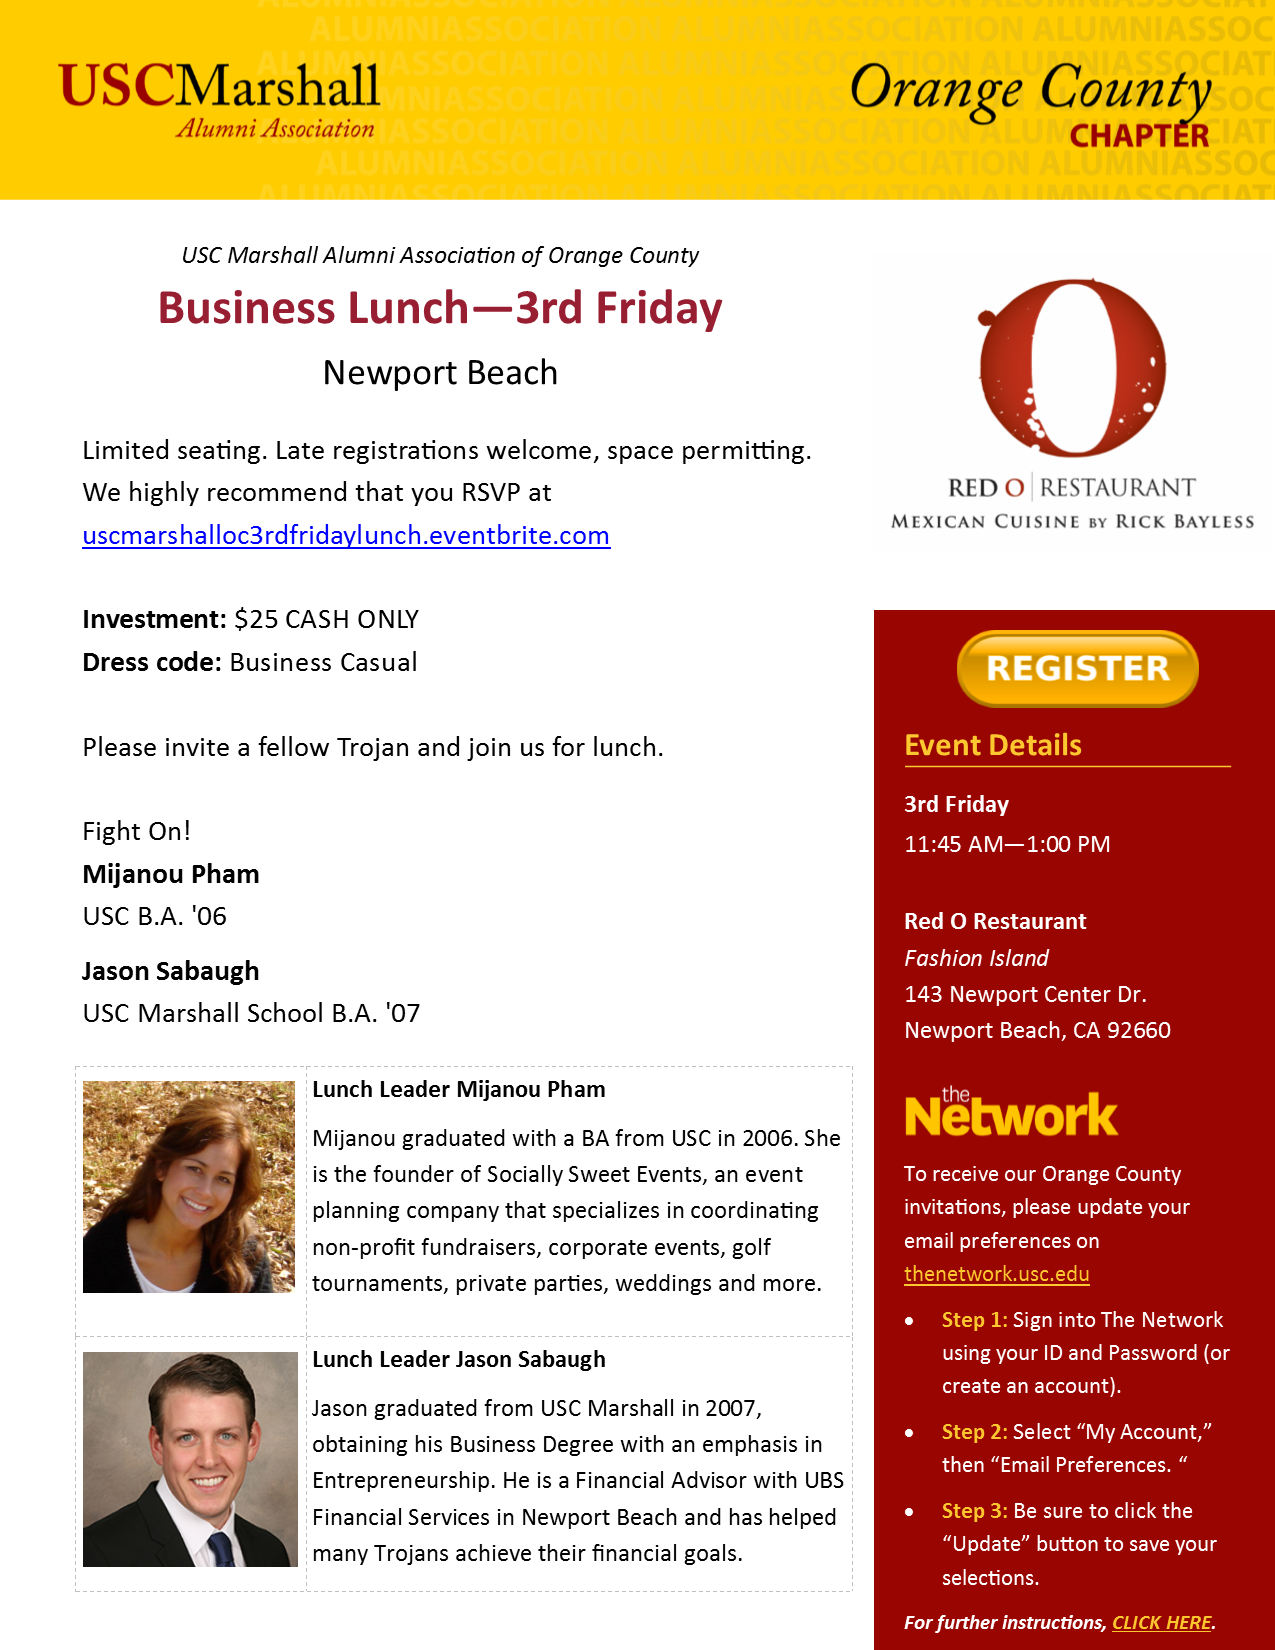 3rd Friday Lunch